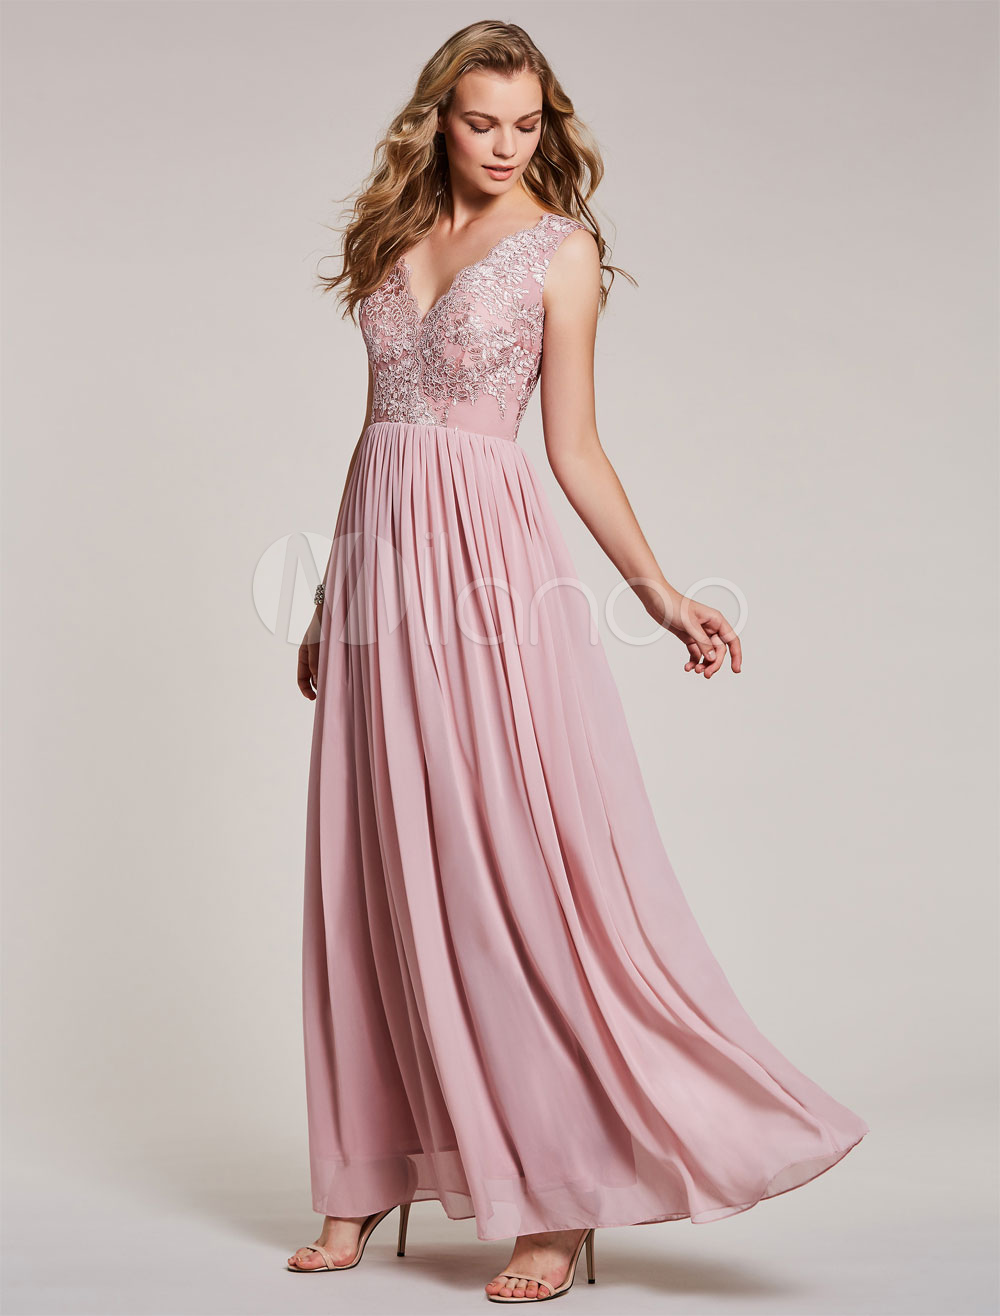 Buy Long Prom Dresses Chiffon Lace Applique V Neck Cameo Pink Sleeveless Floor Length Formal Evening Gowns for $83.59 in Milanoo store